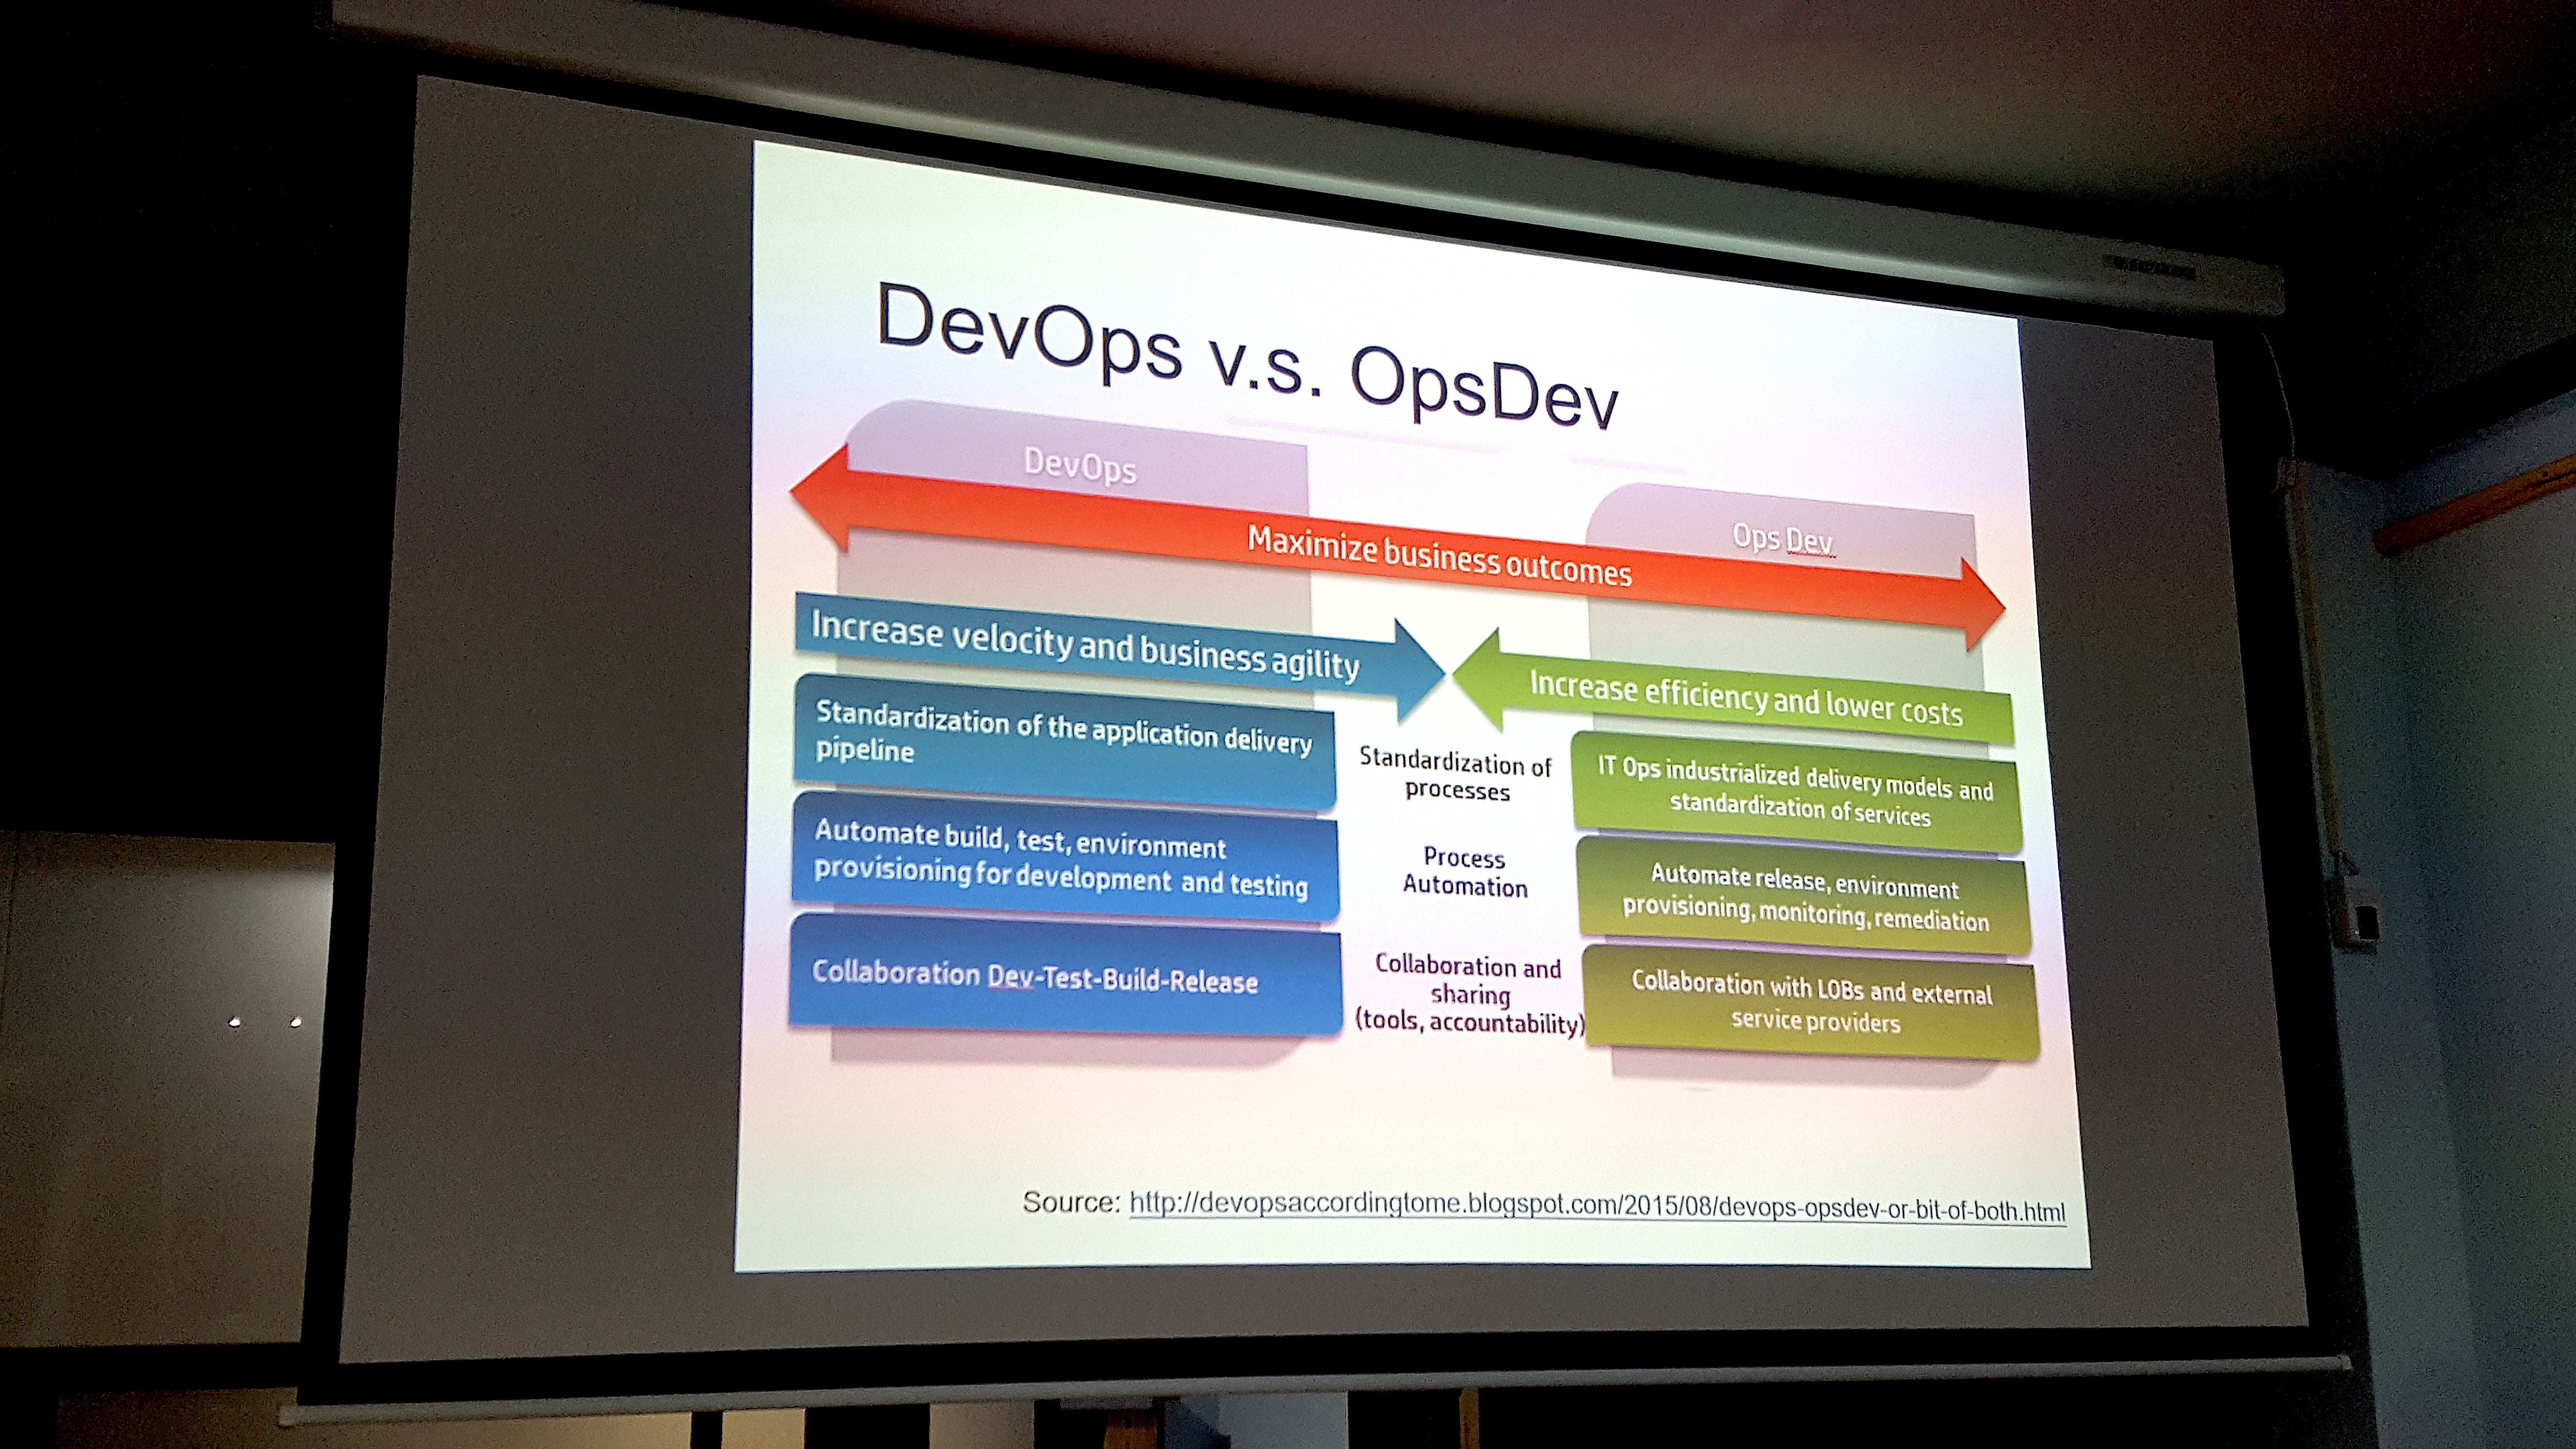 DevOps vs. OpsDev (from Robert Hu)